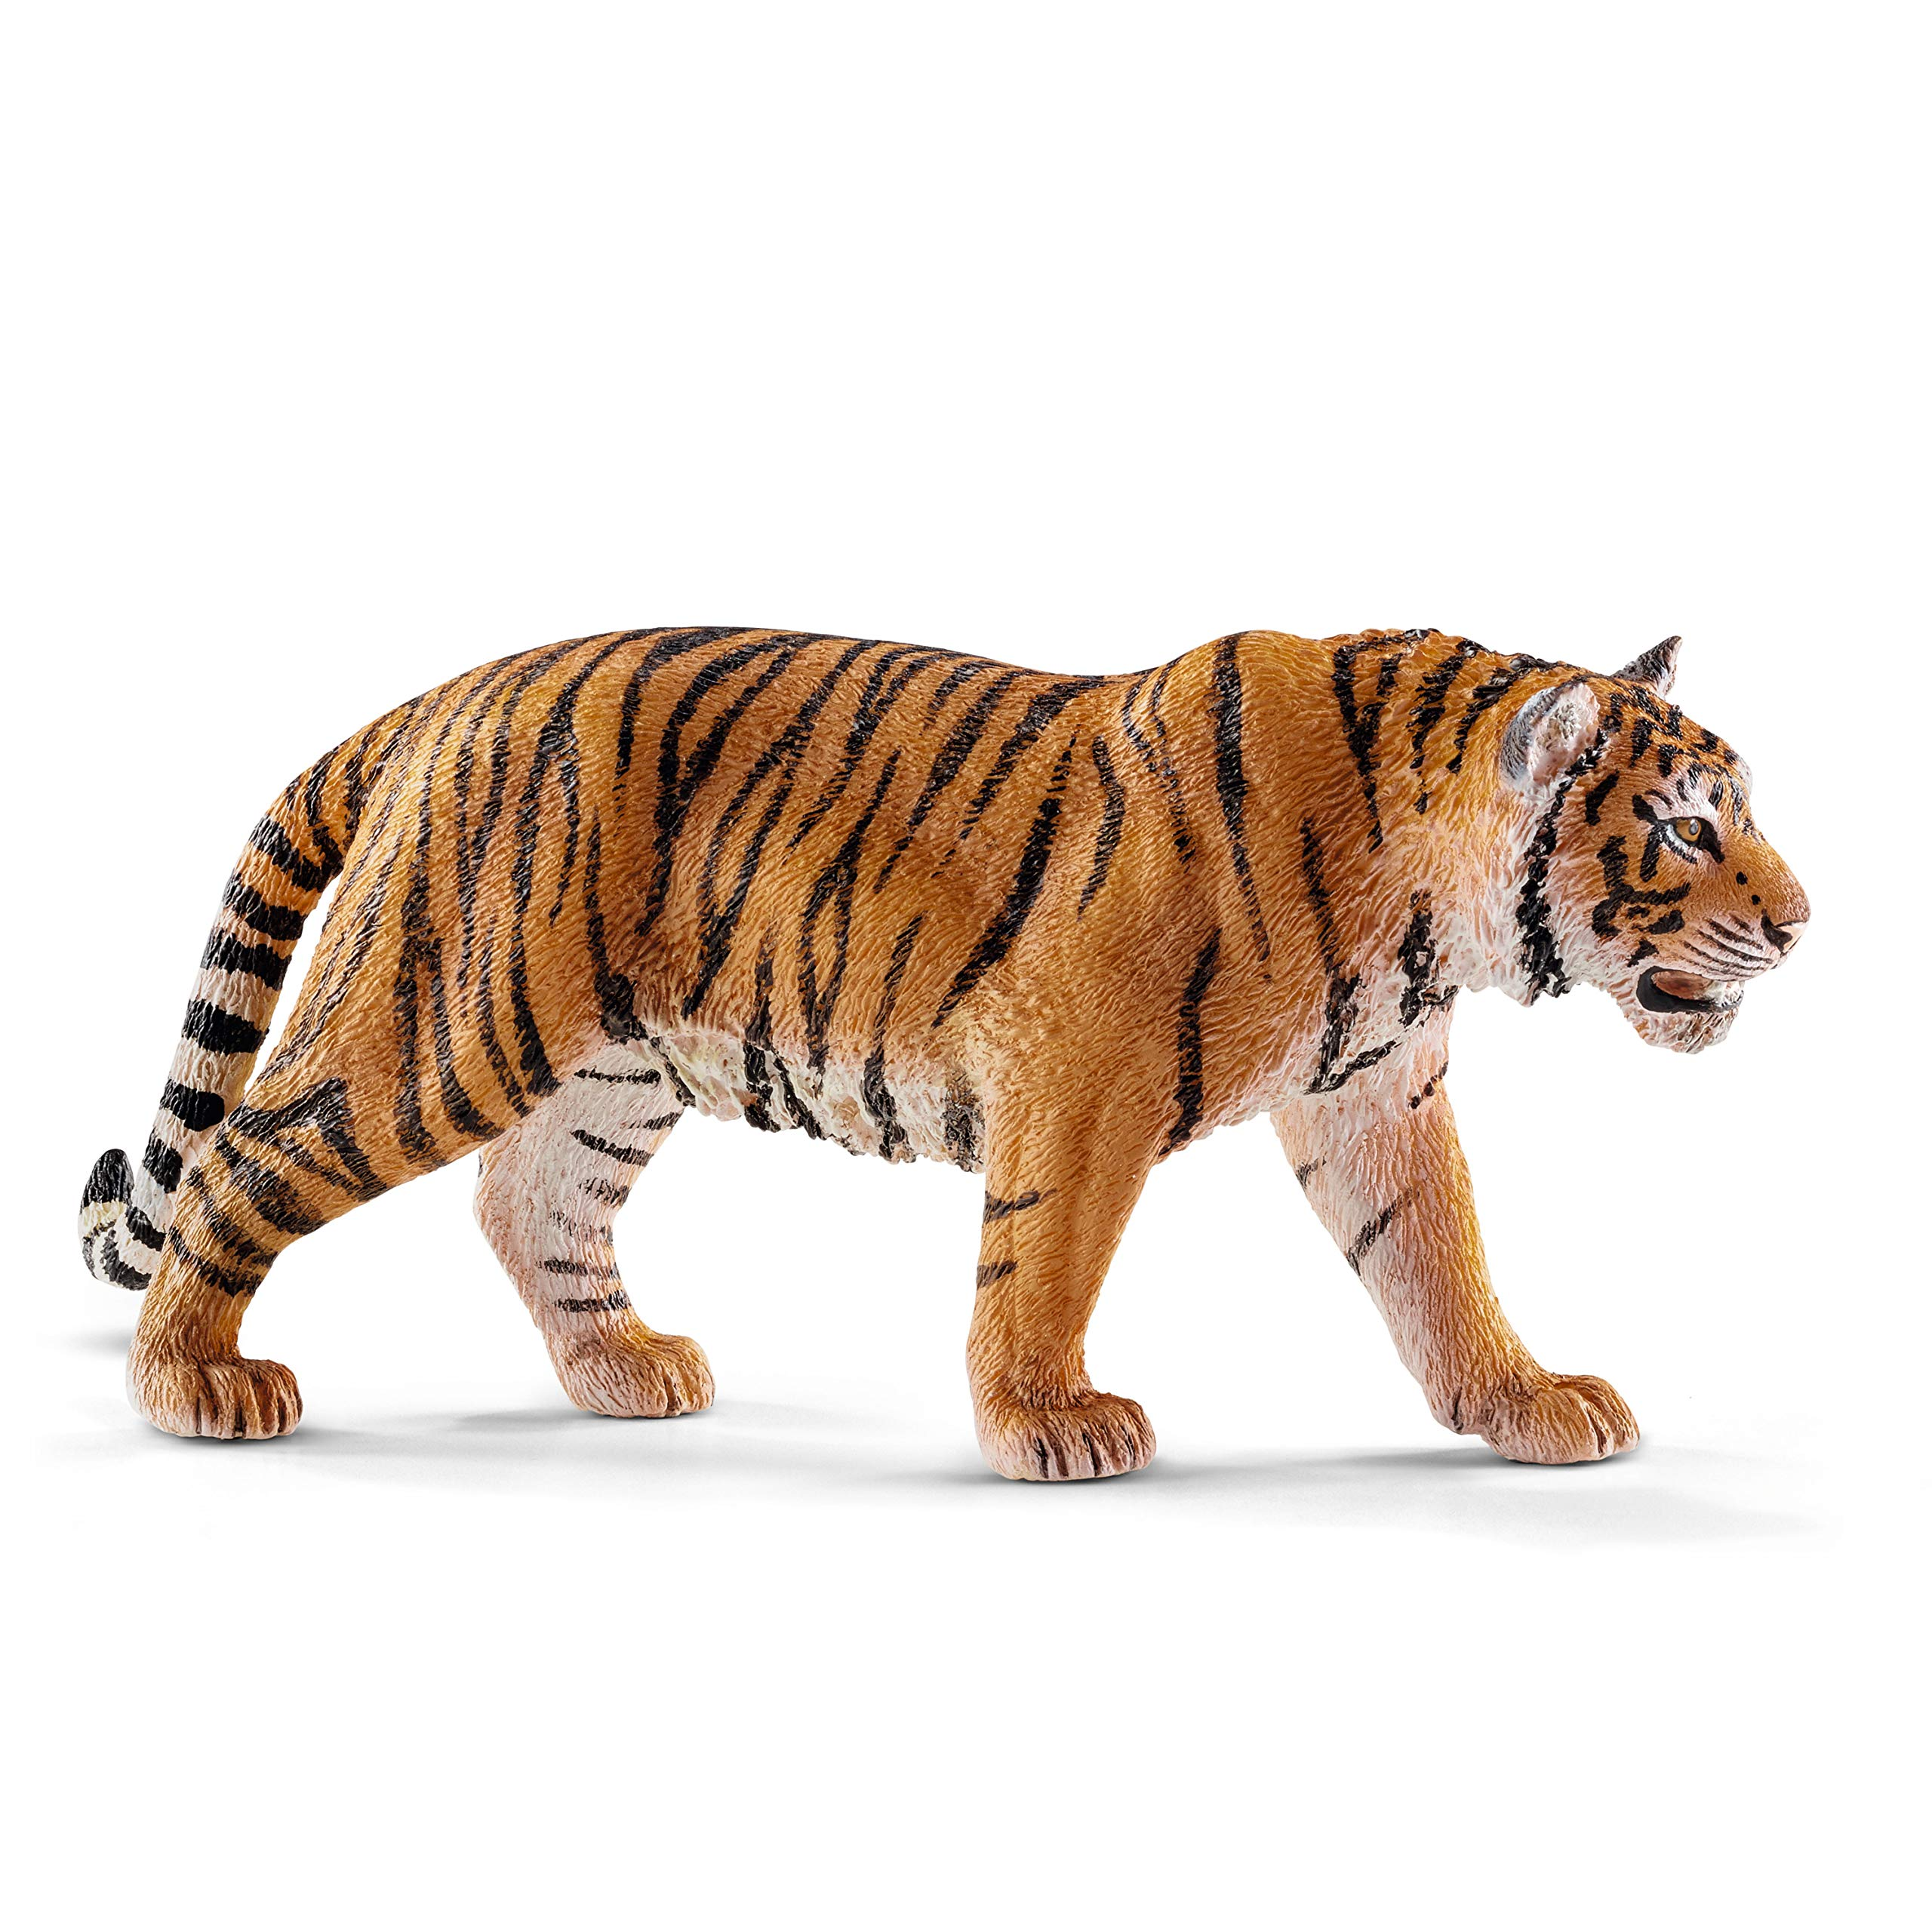 SCHLEICH Wild Life, Animal Figurine, Animal Toys for Boys and Girls 3-8 Years Old, Tiger